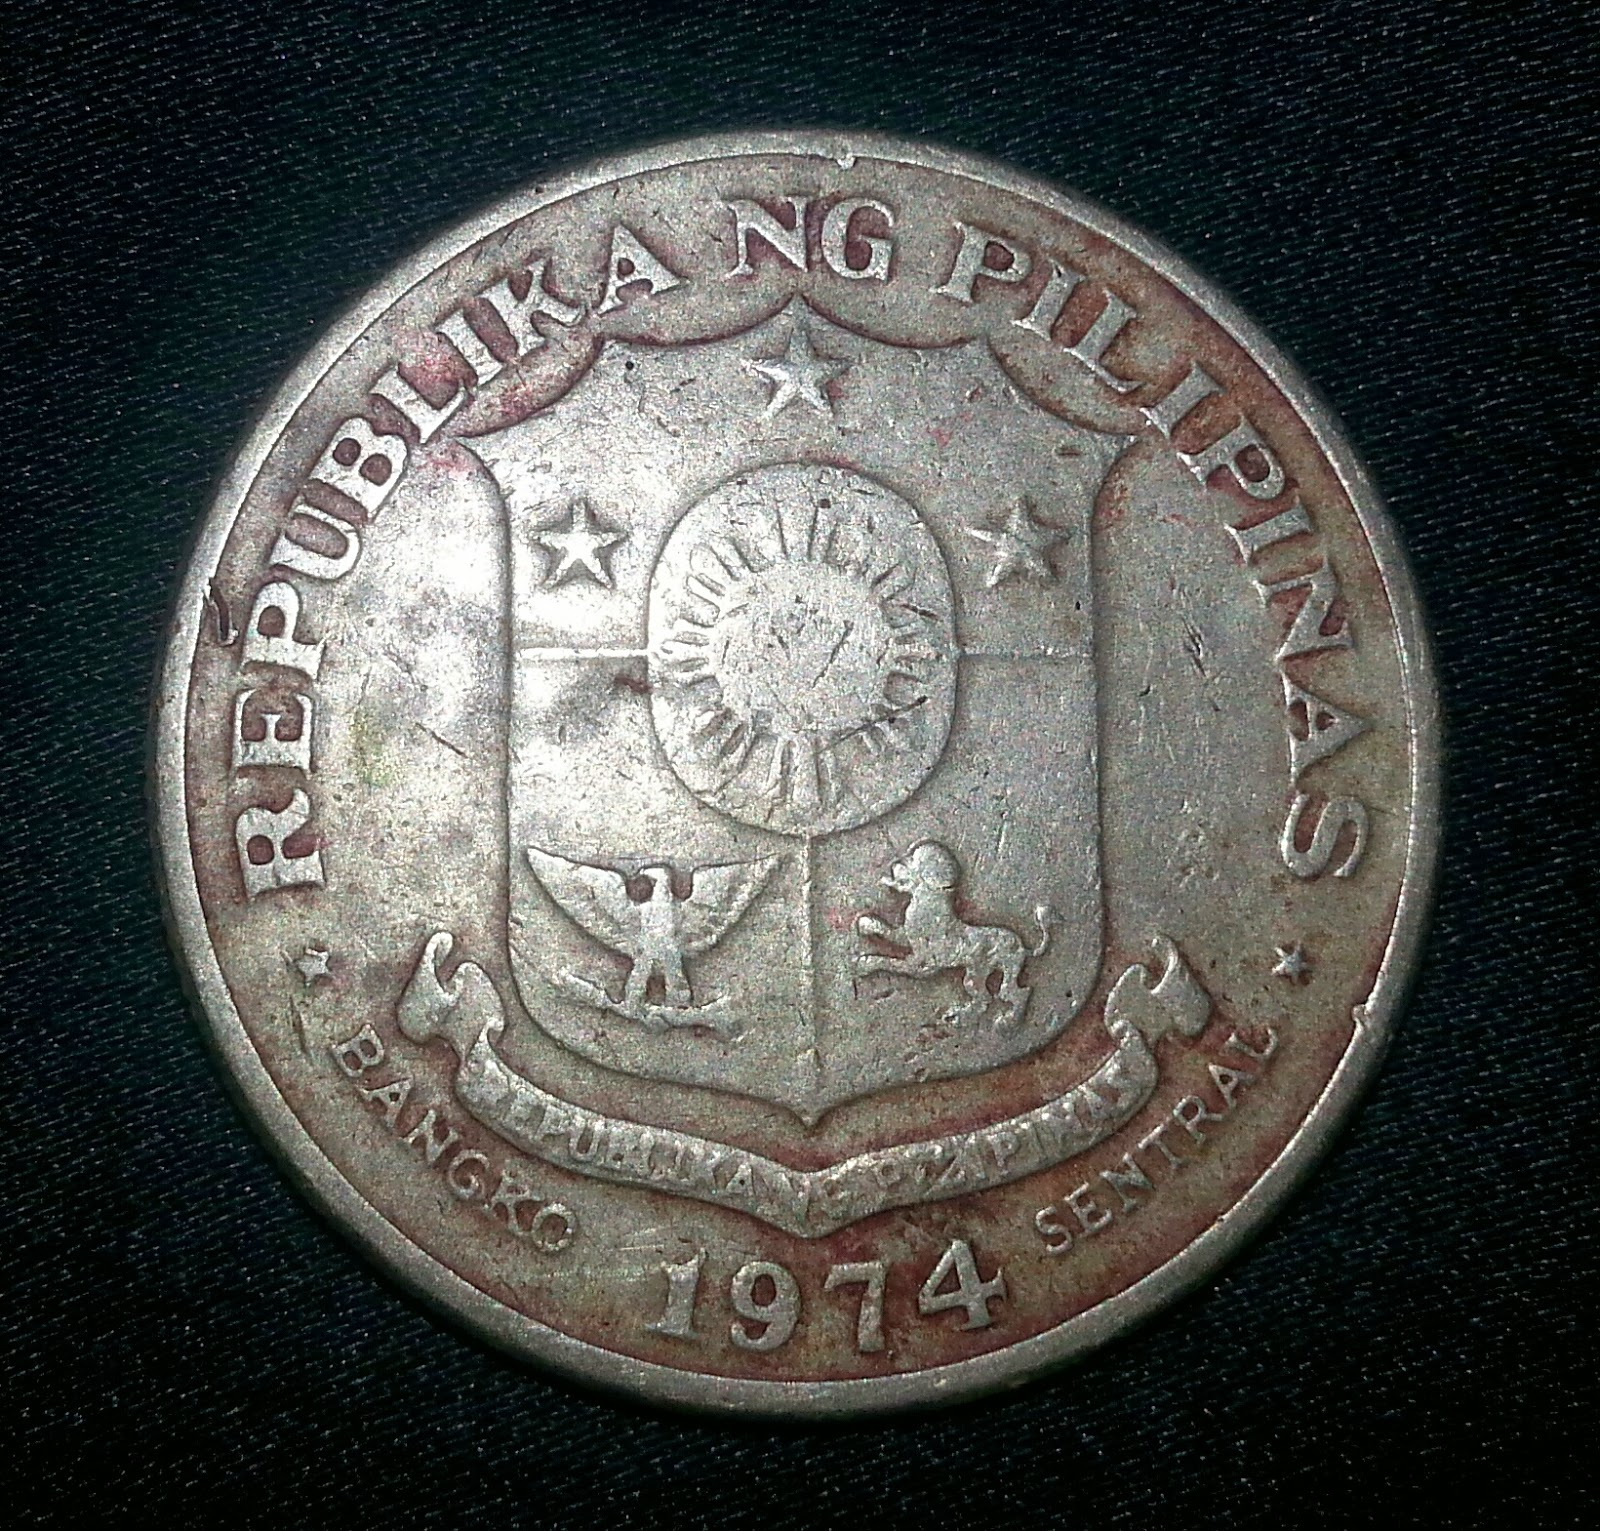 rare coins from around the world silver one piso of